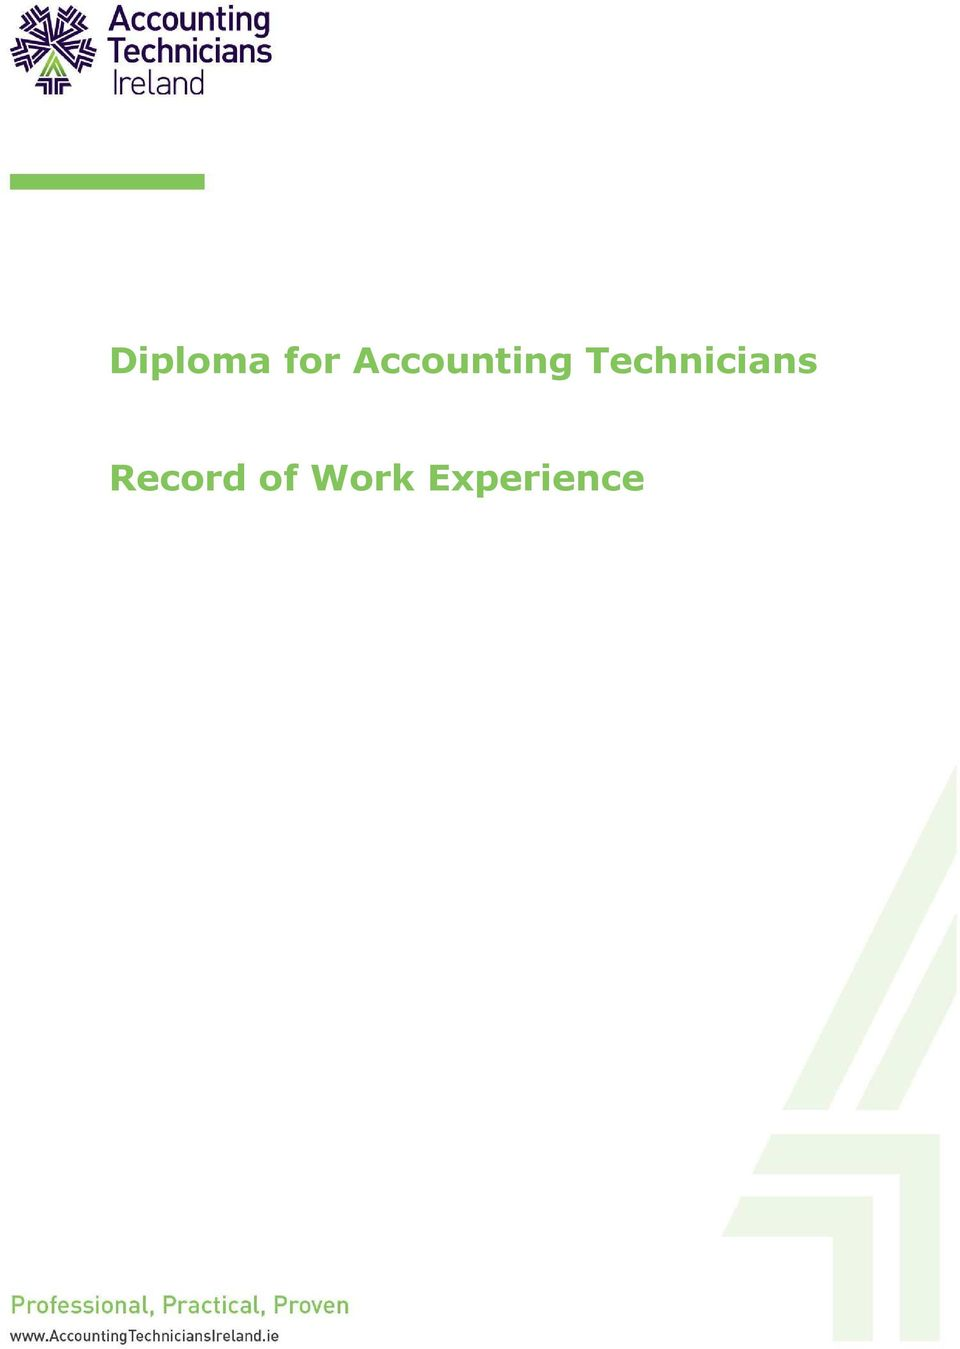 Accounting Technicians